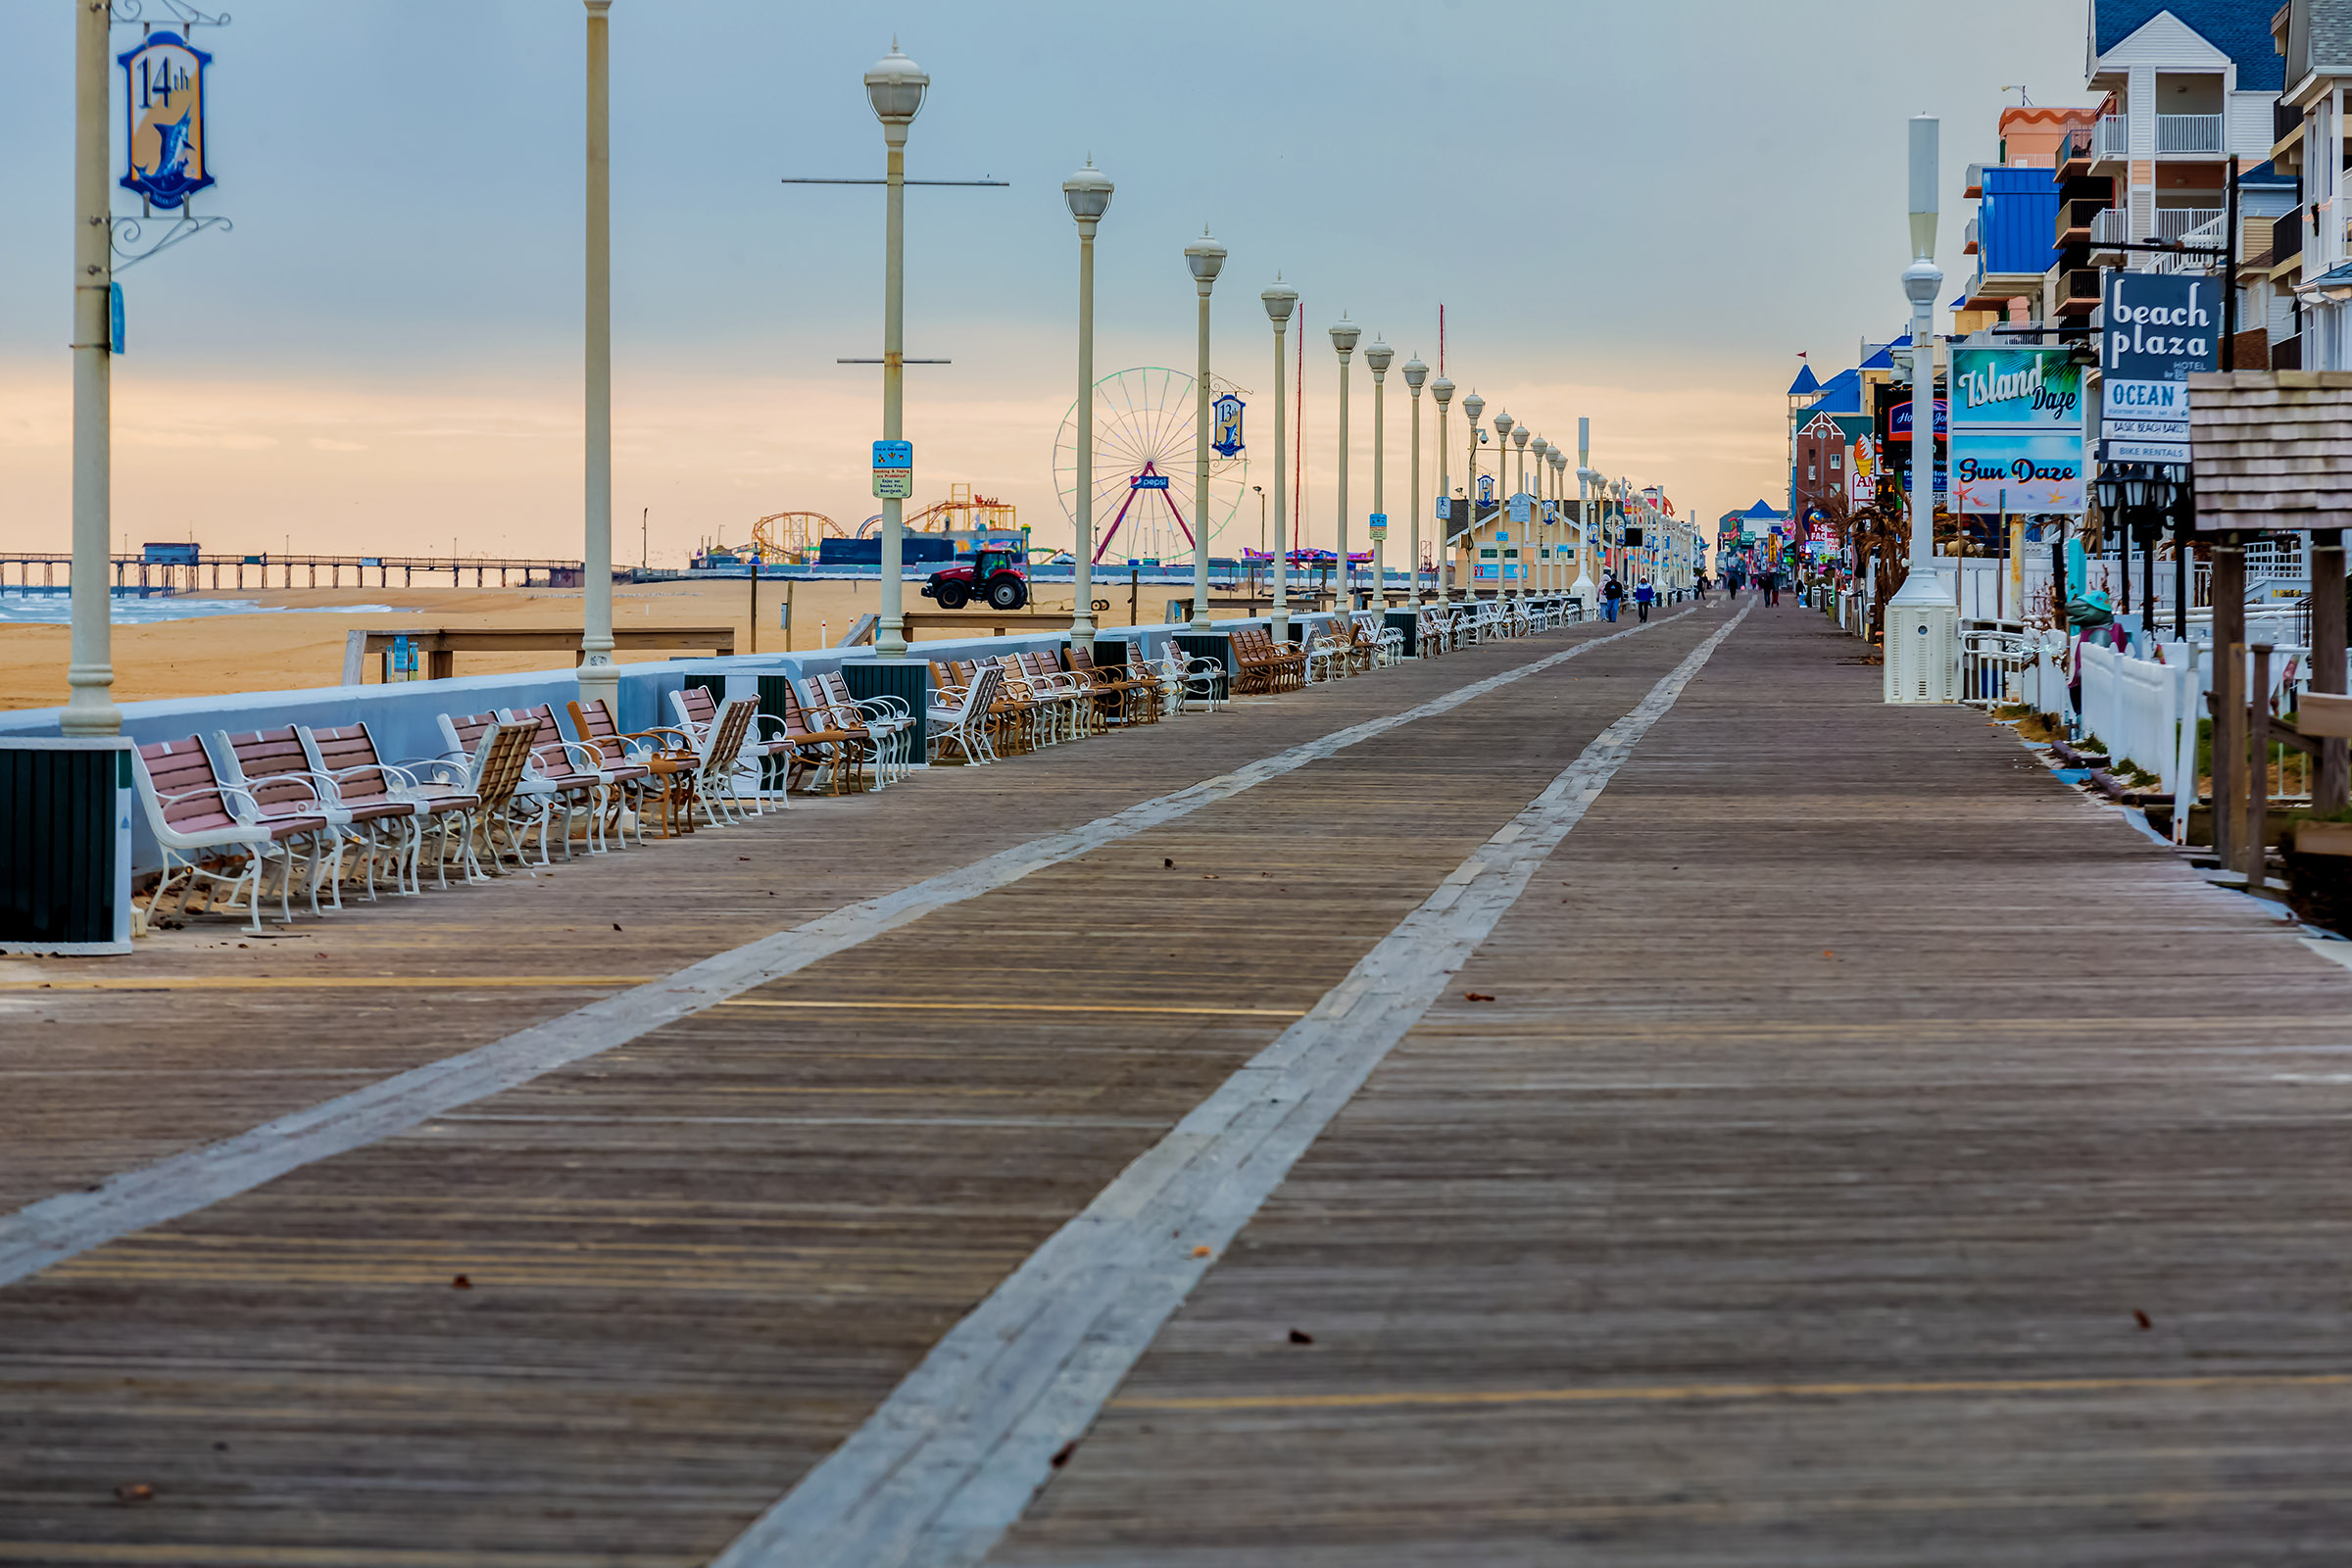 Boardwalk Redecking Project Delayed By Lumber Shortage